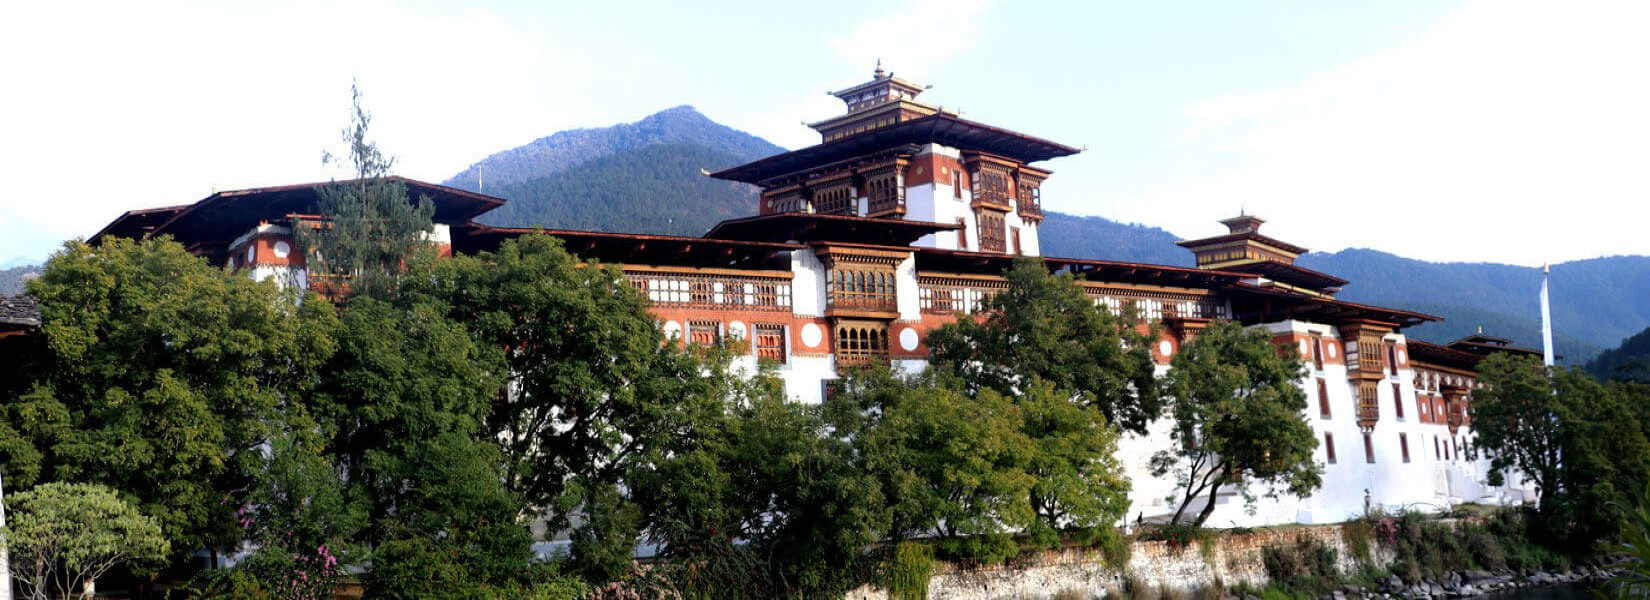 Bhutan Royal Palace Picture